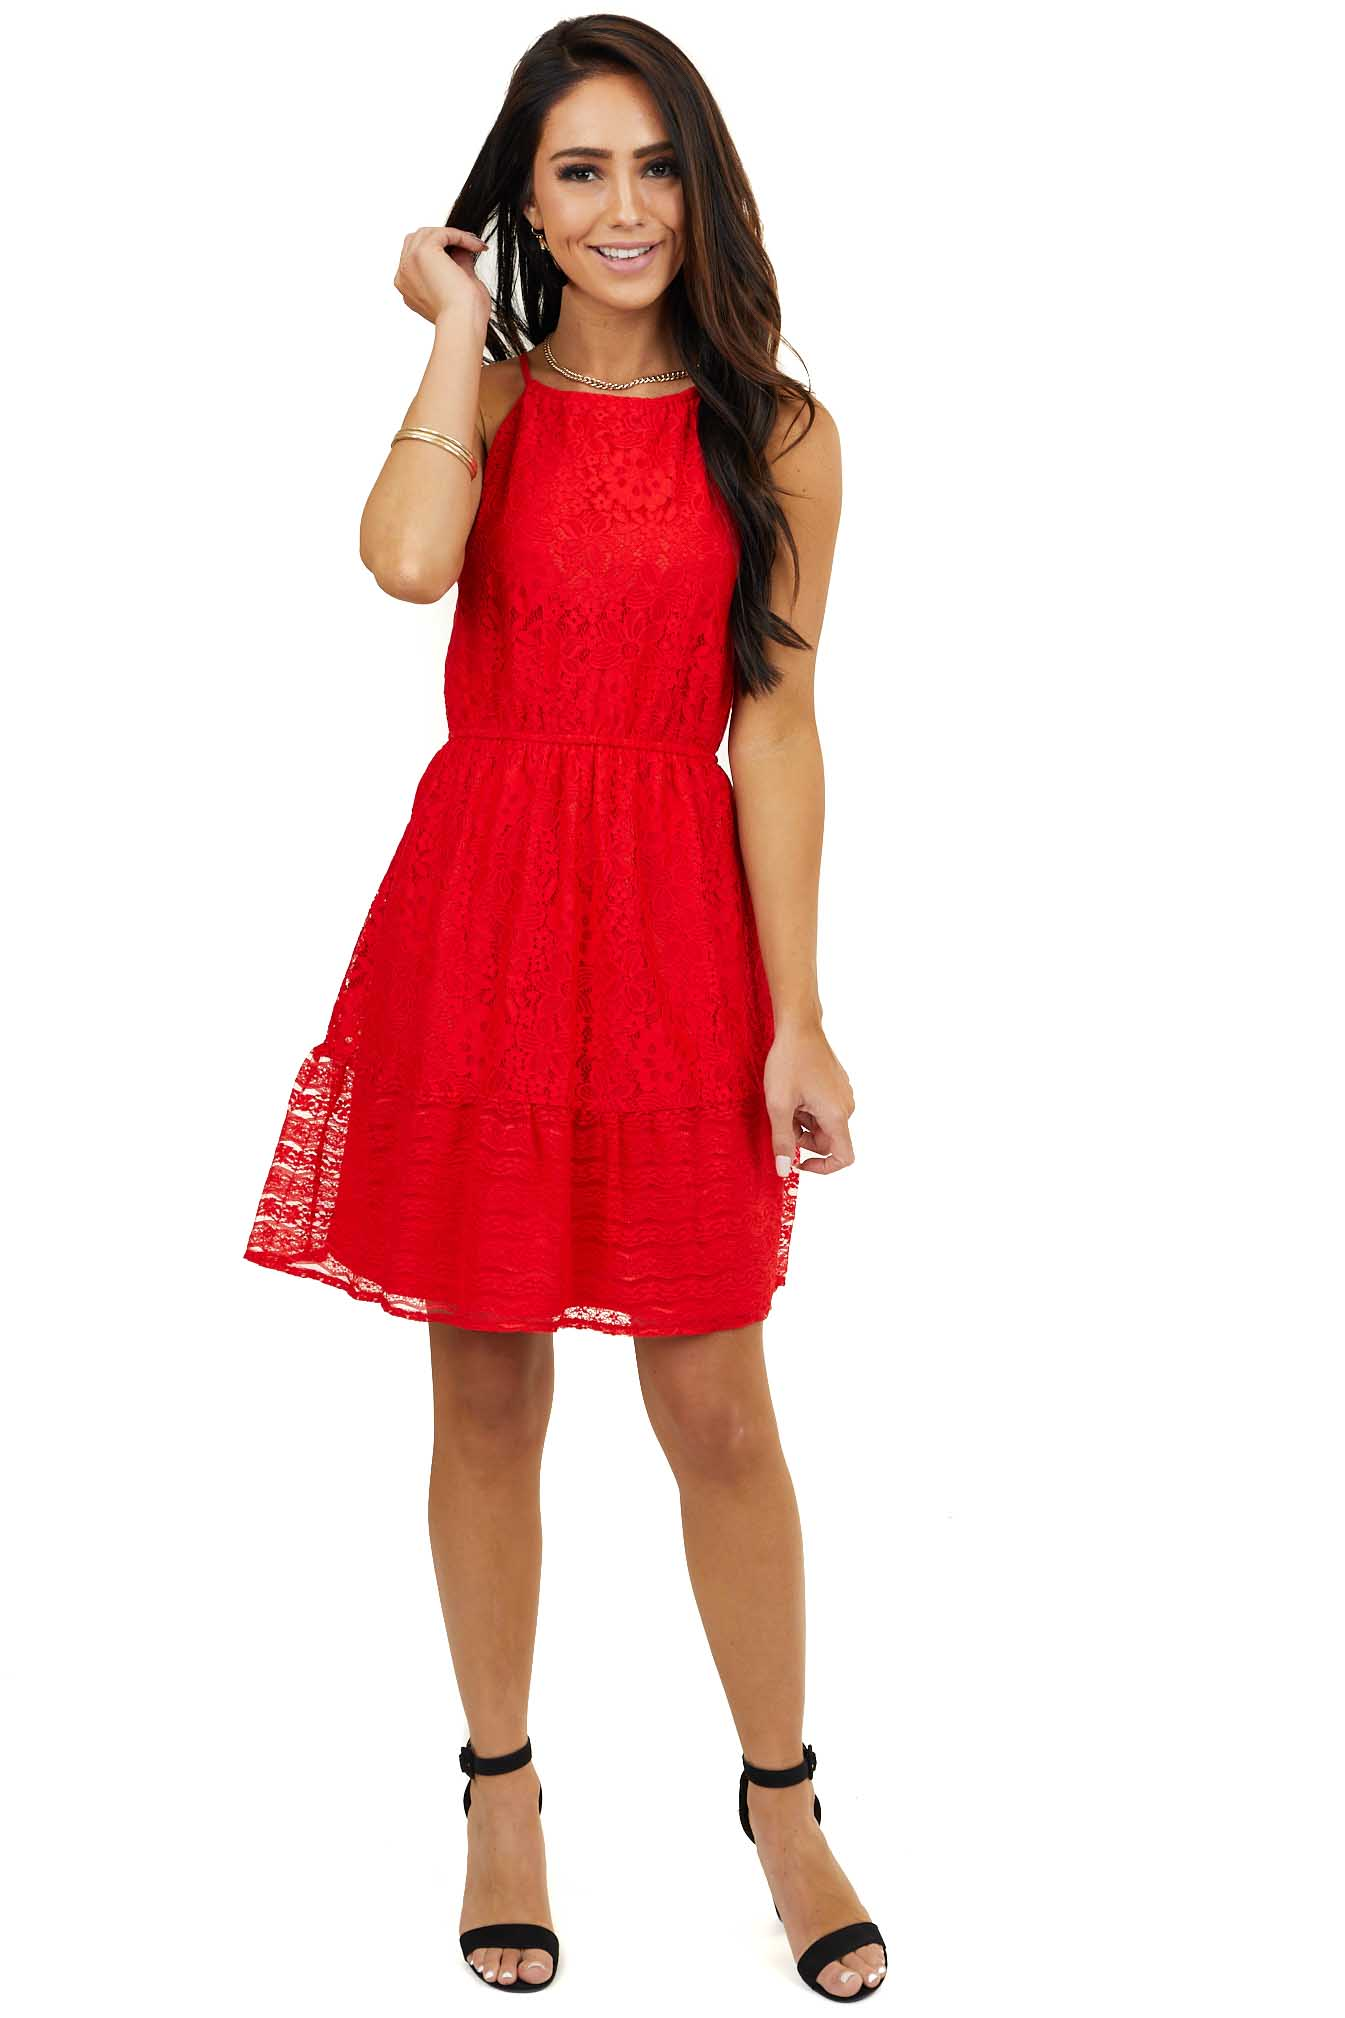 Lipstick Red Sleeveless High Neck Floral Lace Dress